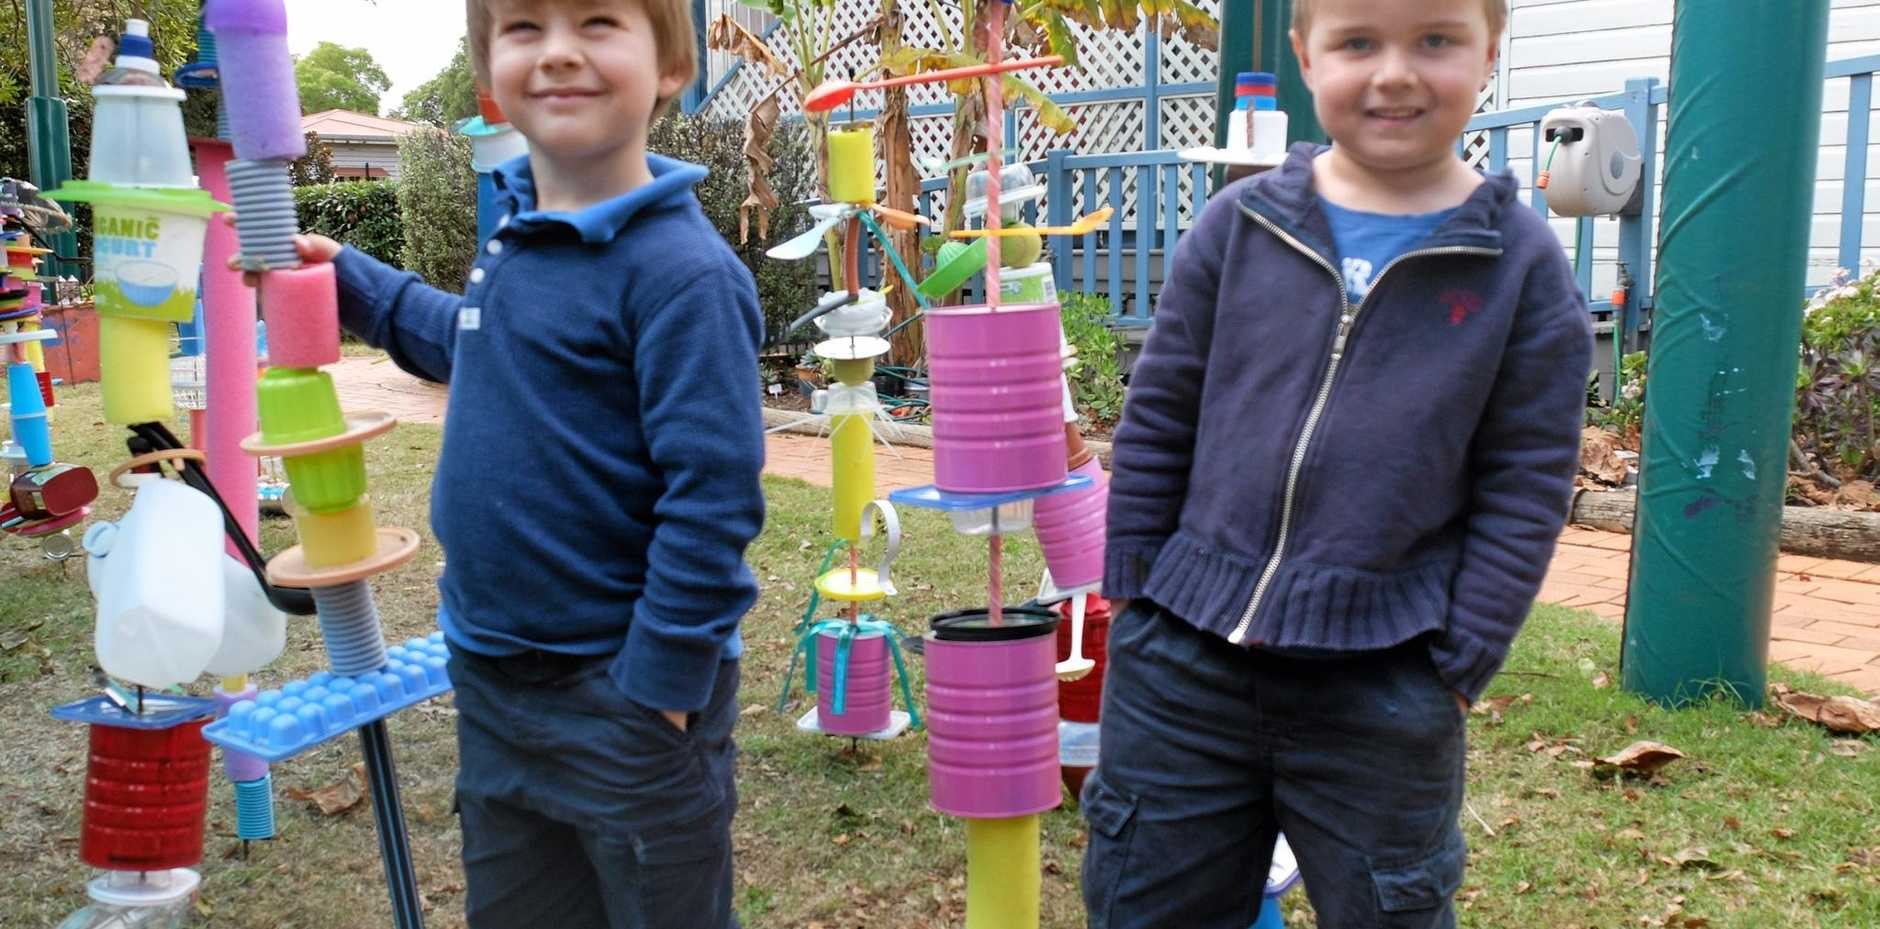 TURNING LIFE INTO ART: Chiselhurst Kindergarten kids Flynn Venter, 4, (left) and Dom Cavanagh, 4, stand proud next to their life-size sculptures.